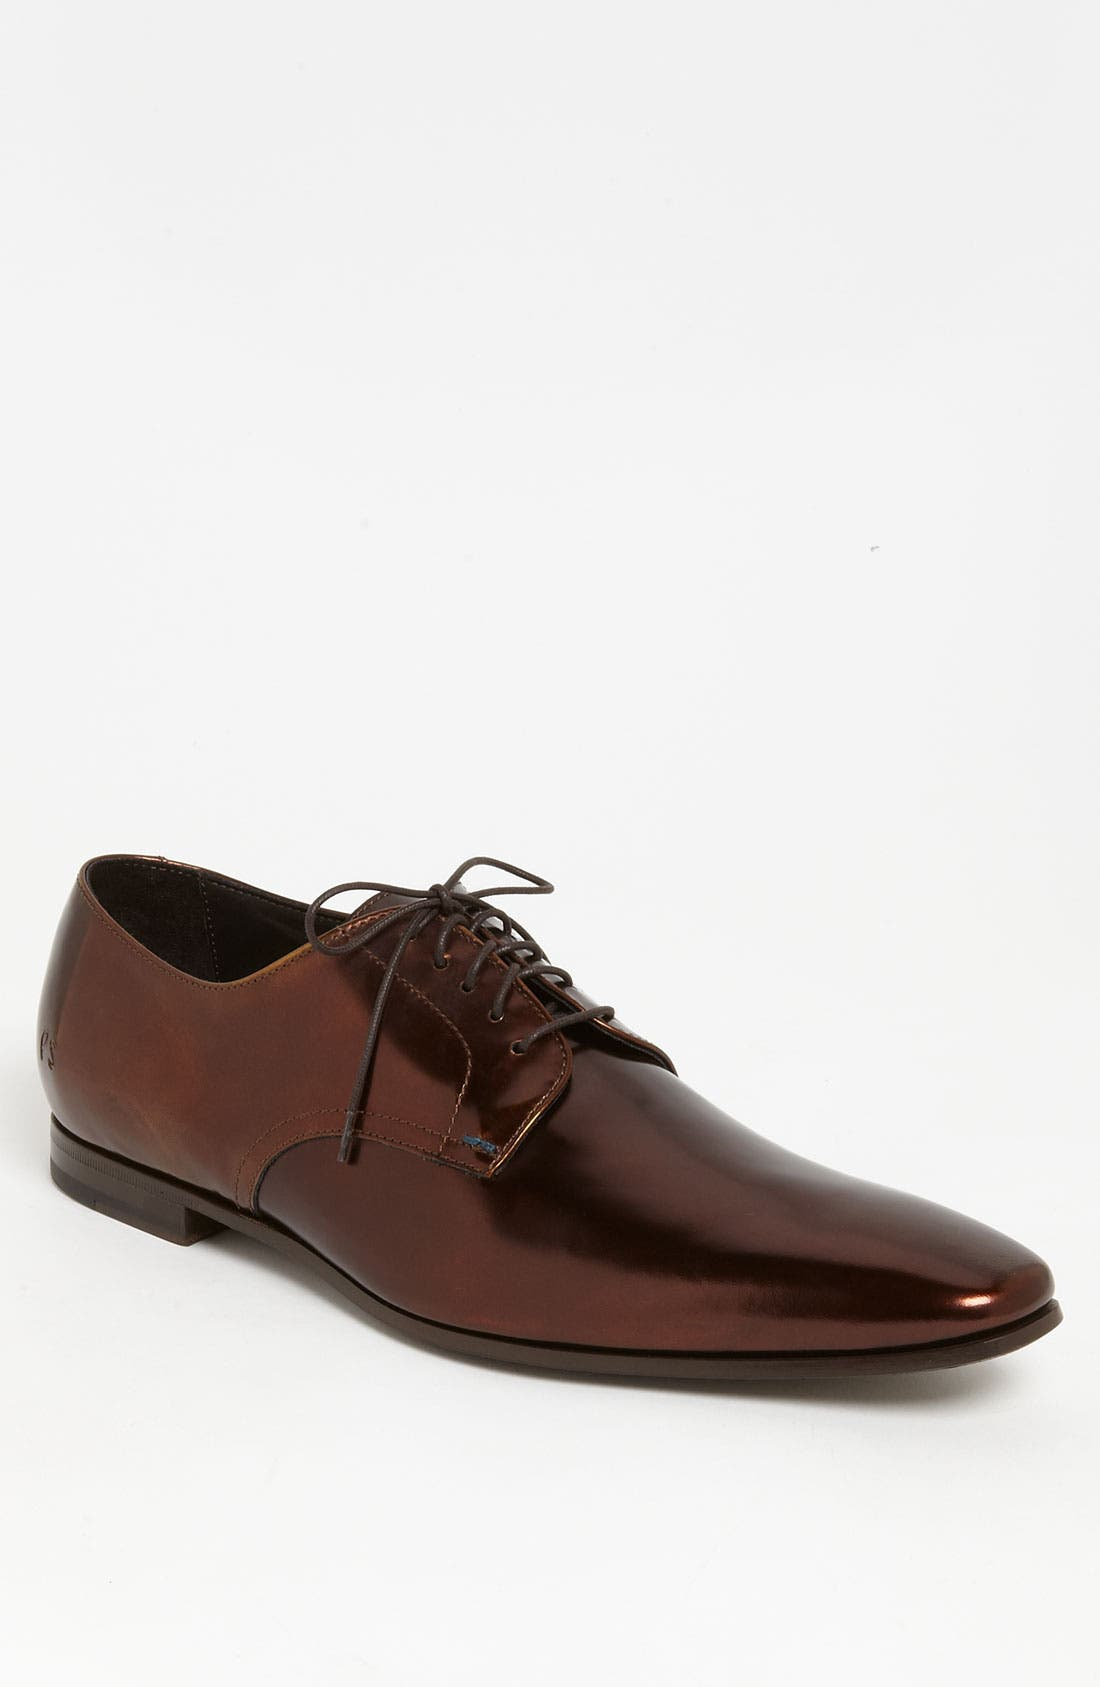 Alternate Image 1 Selected - Paul Smith 'Taylors' Plain Toe Derby